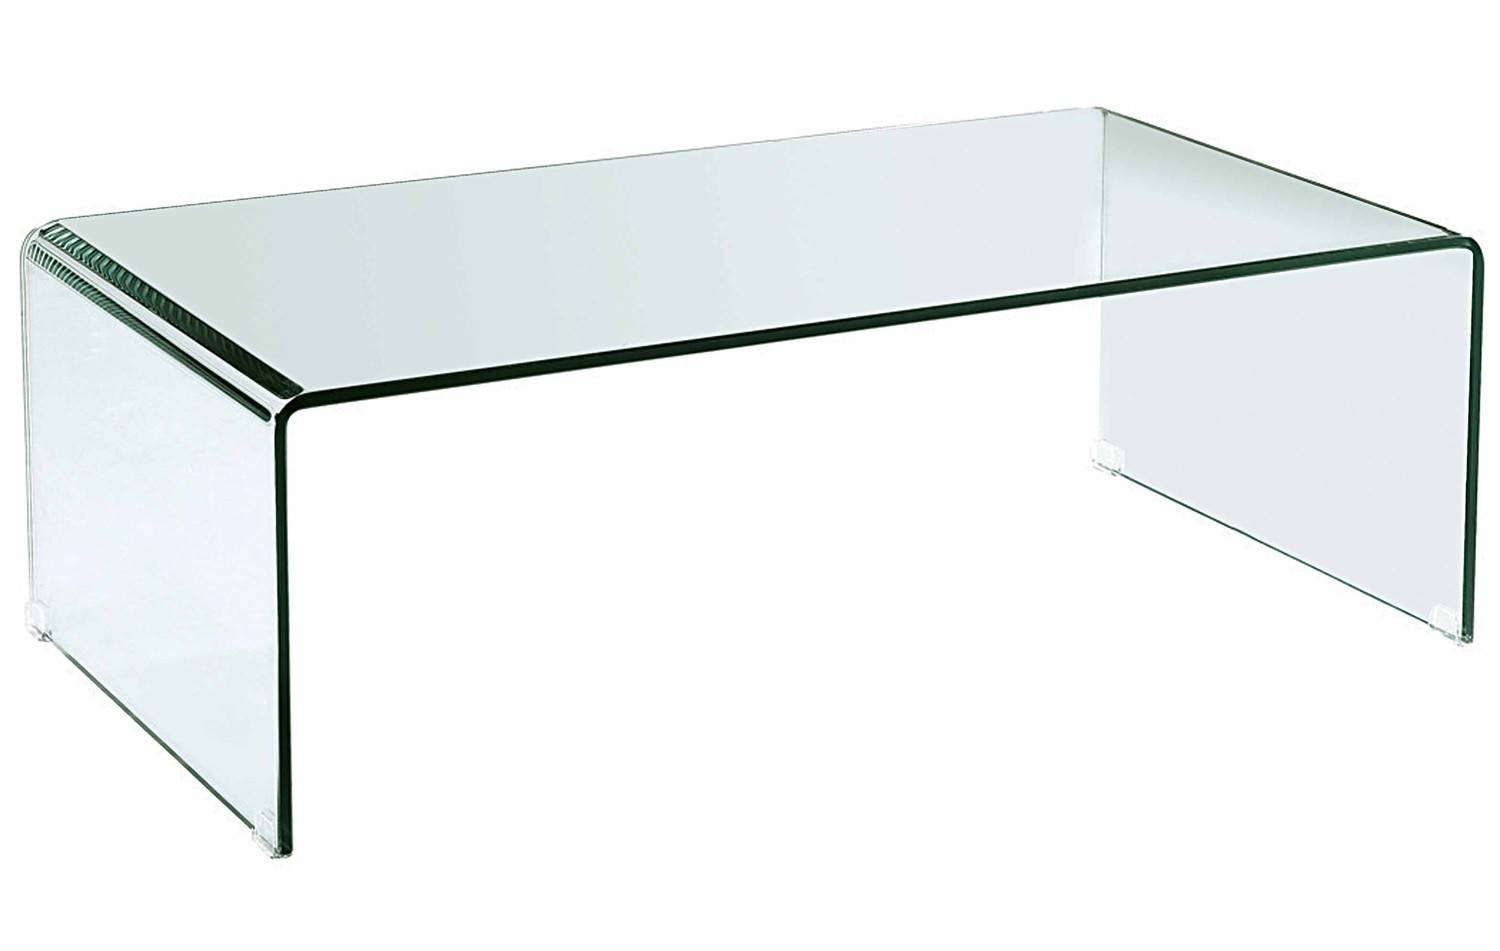 15 Best Collection of Rectangle Glass Coffee Table